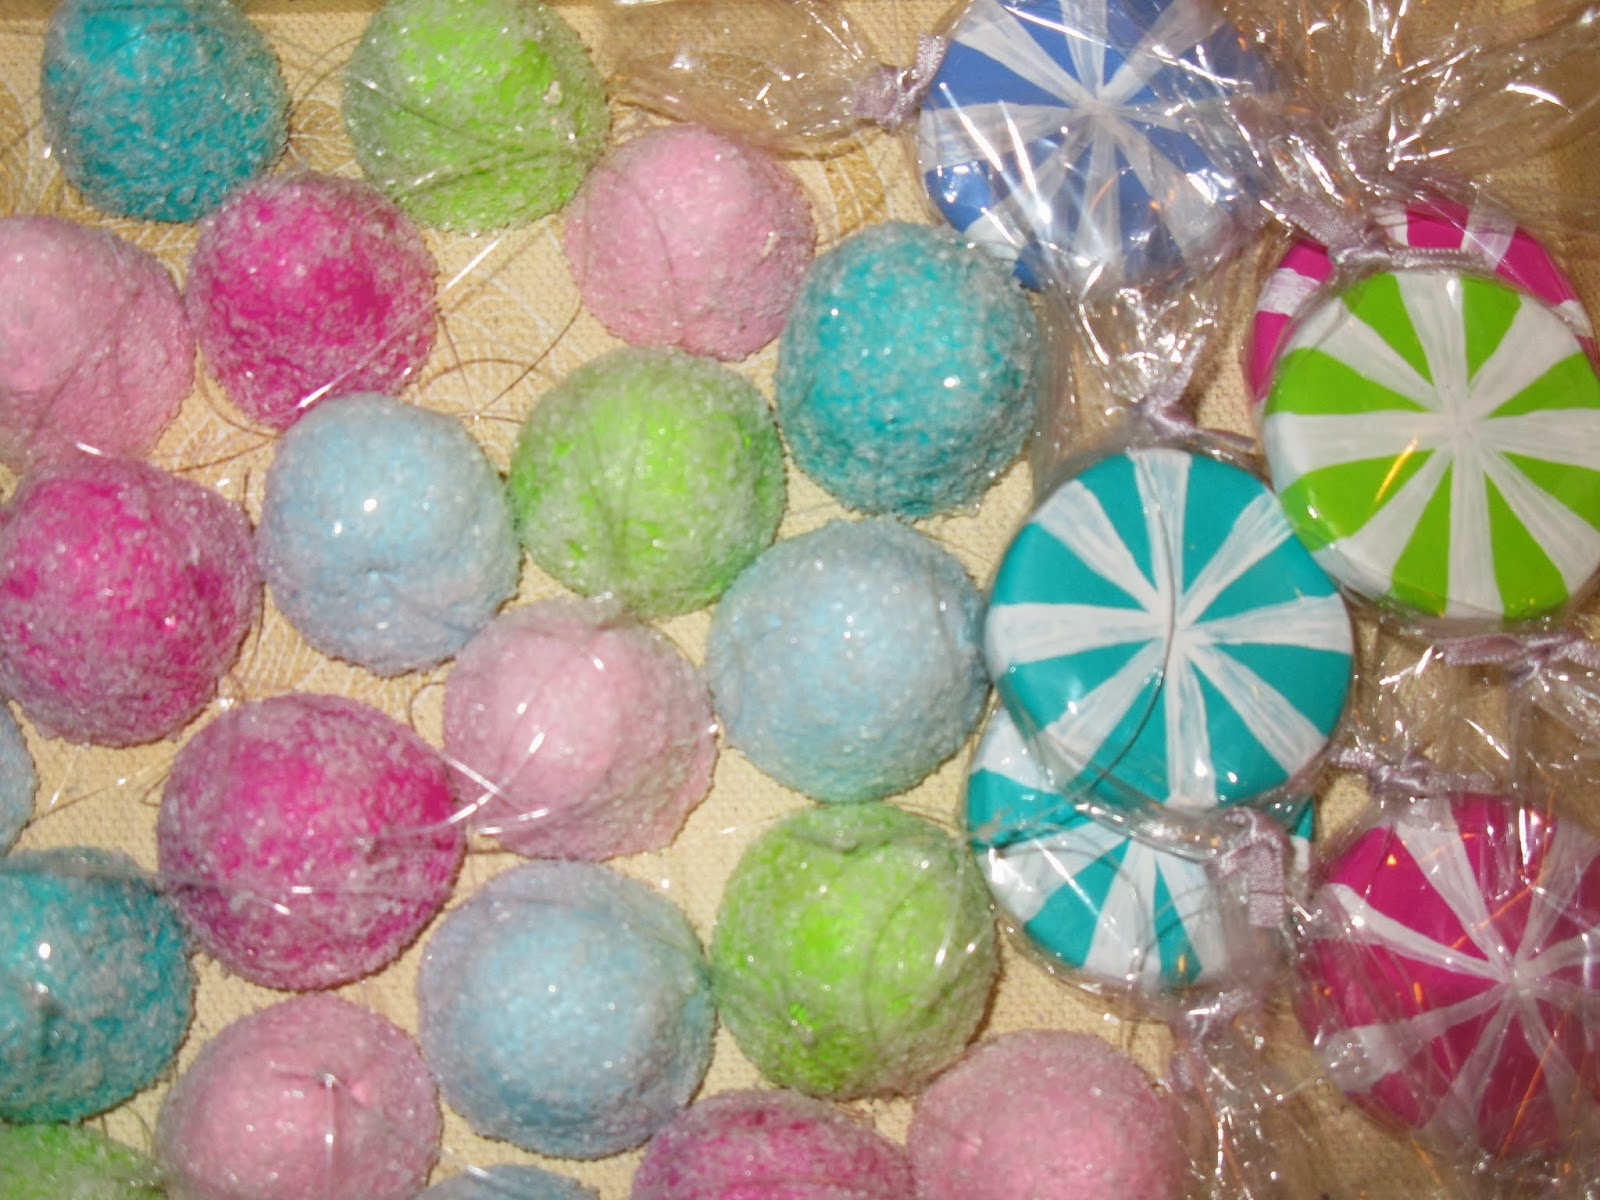 here is a close up of the gum drops and whimsical peppermints - Candy Christmas Decorations Hobby Lobby